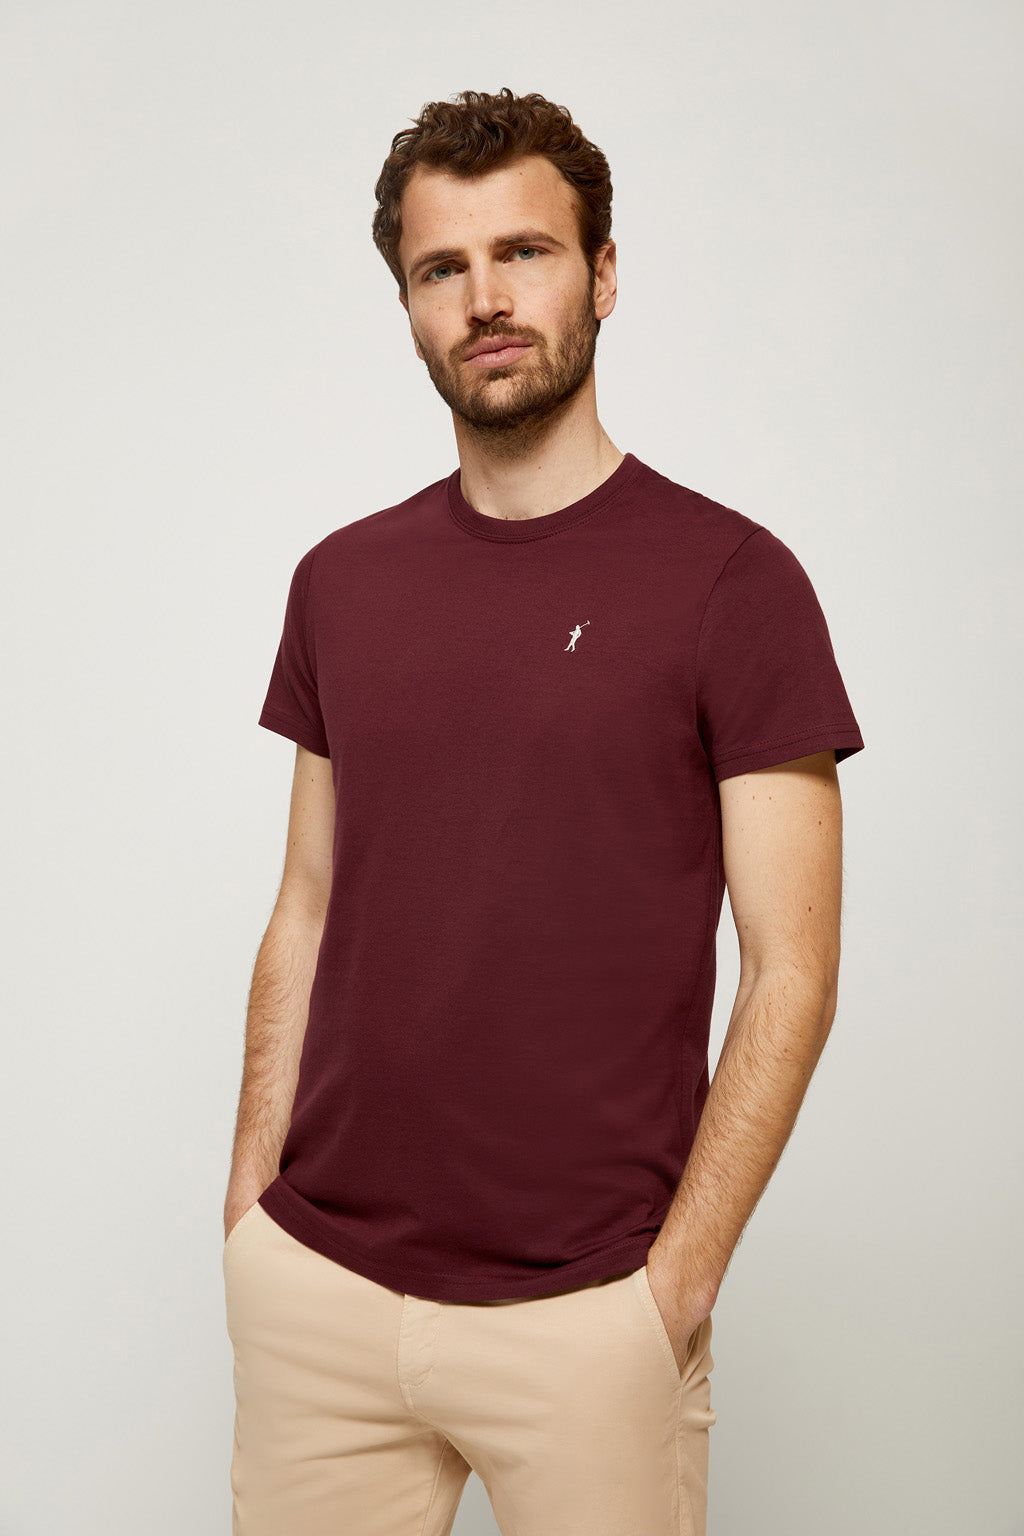 Burgundy tee with embroidered logo